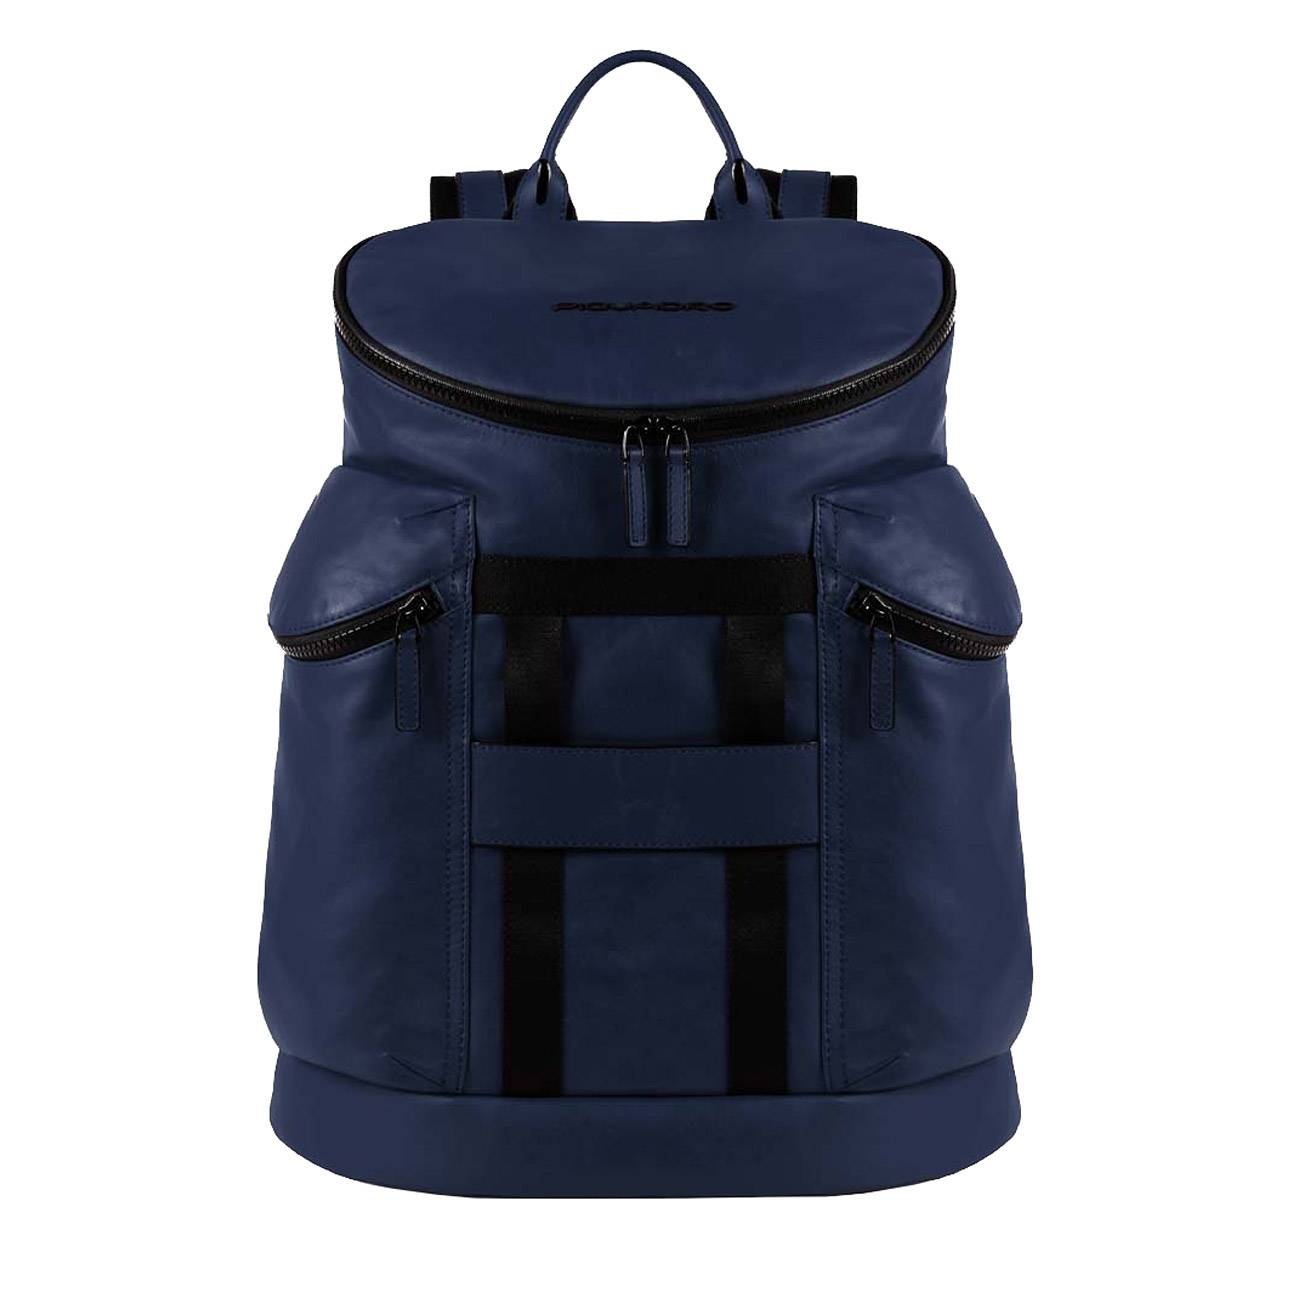 SETEBOS BACKPACK